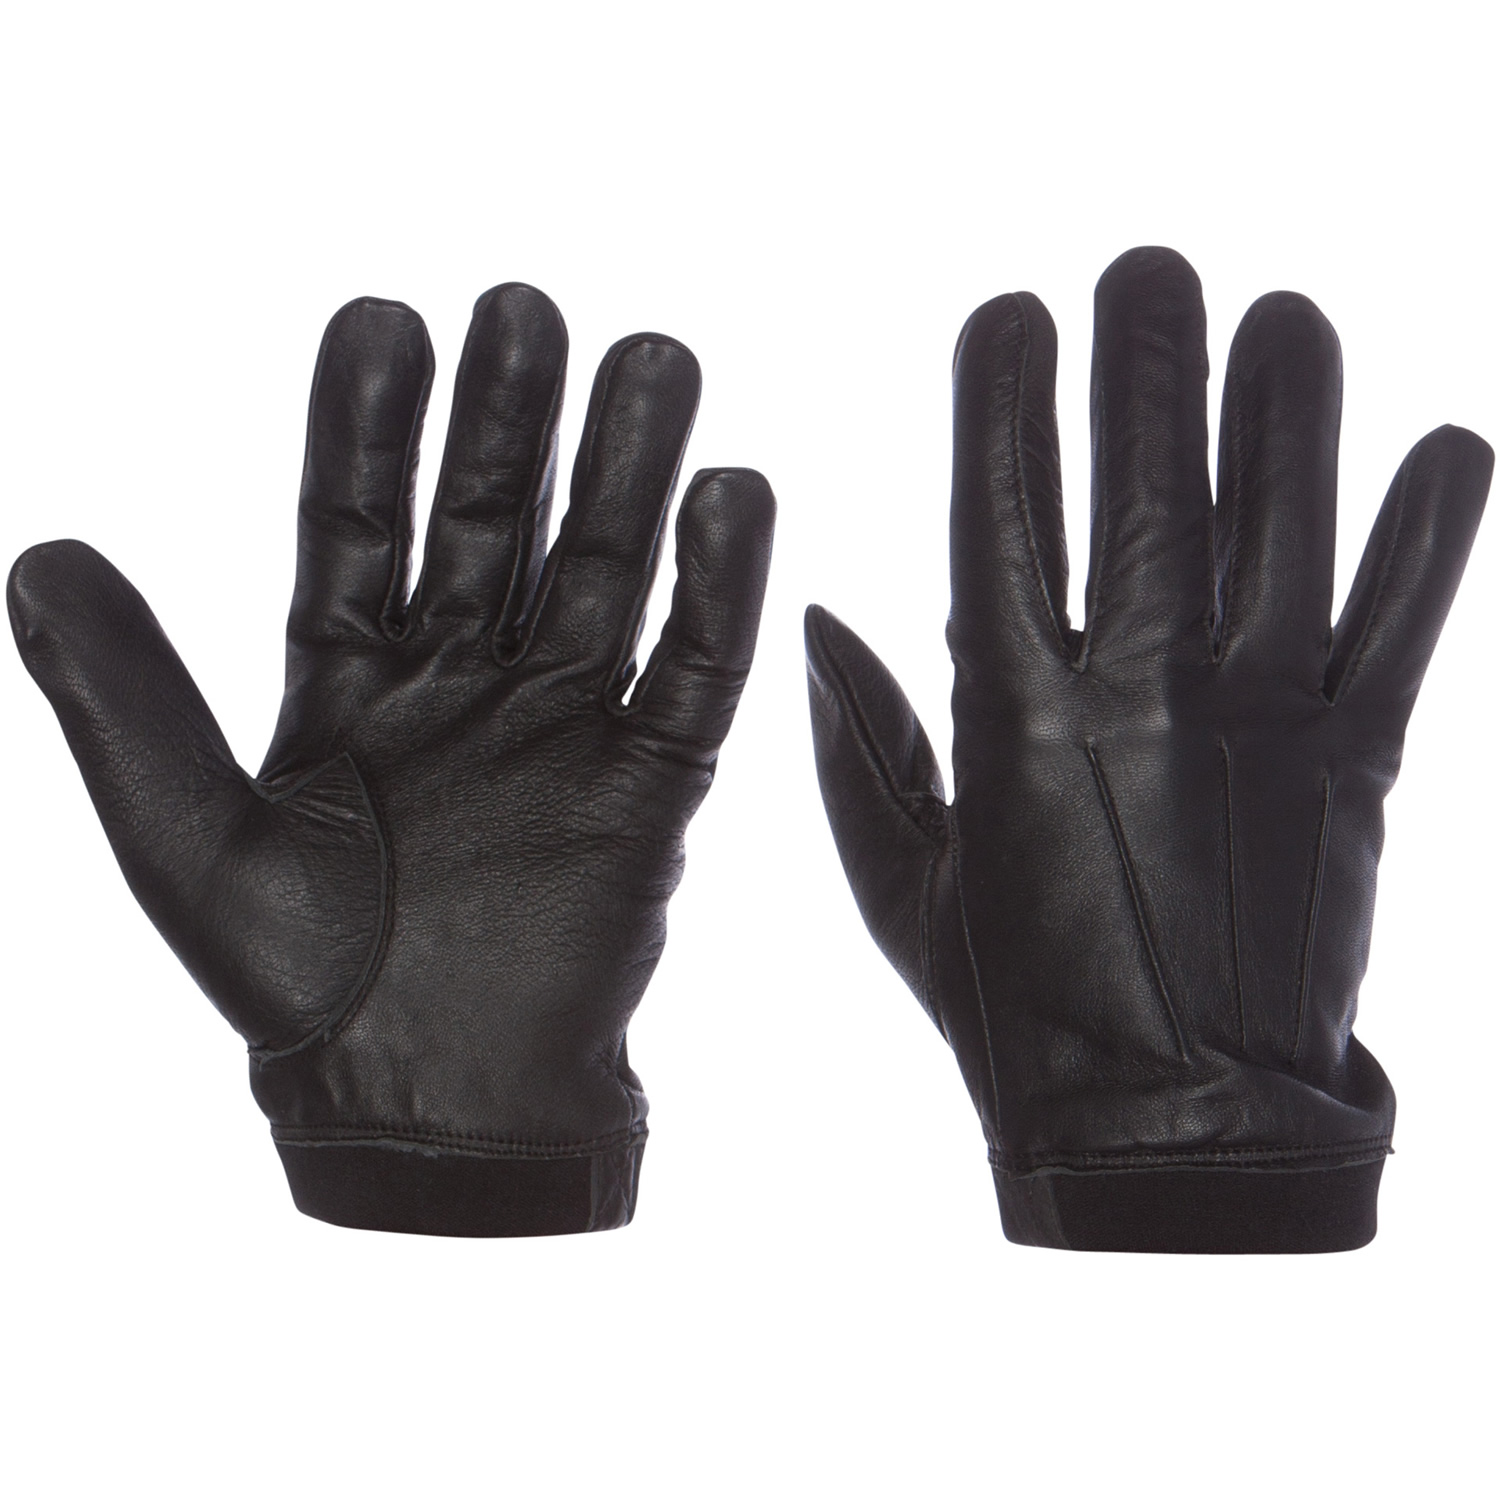 Black tactical gloves - Protech Police Military Duty Black Tactical Gloves W Neoprene Cuff All Sizes